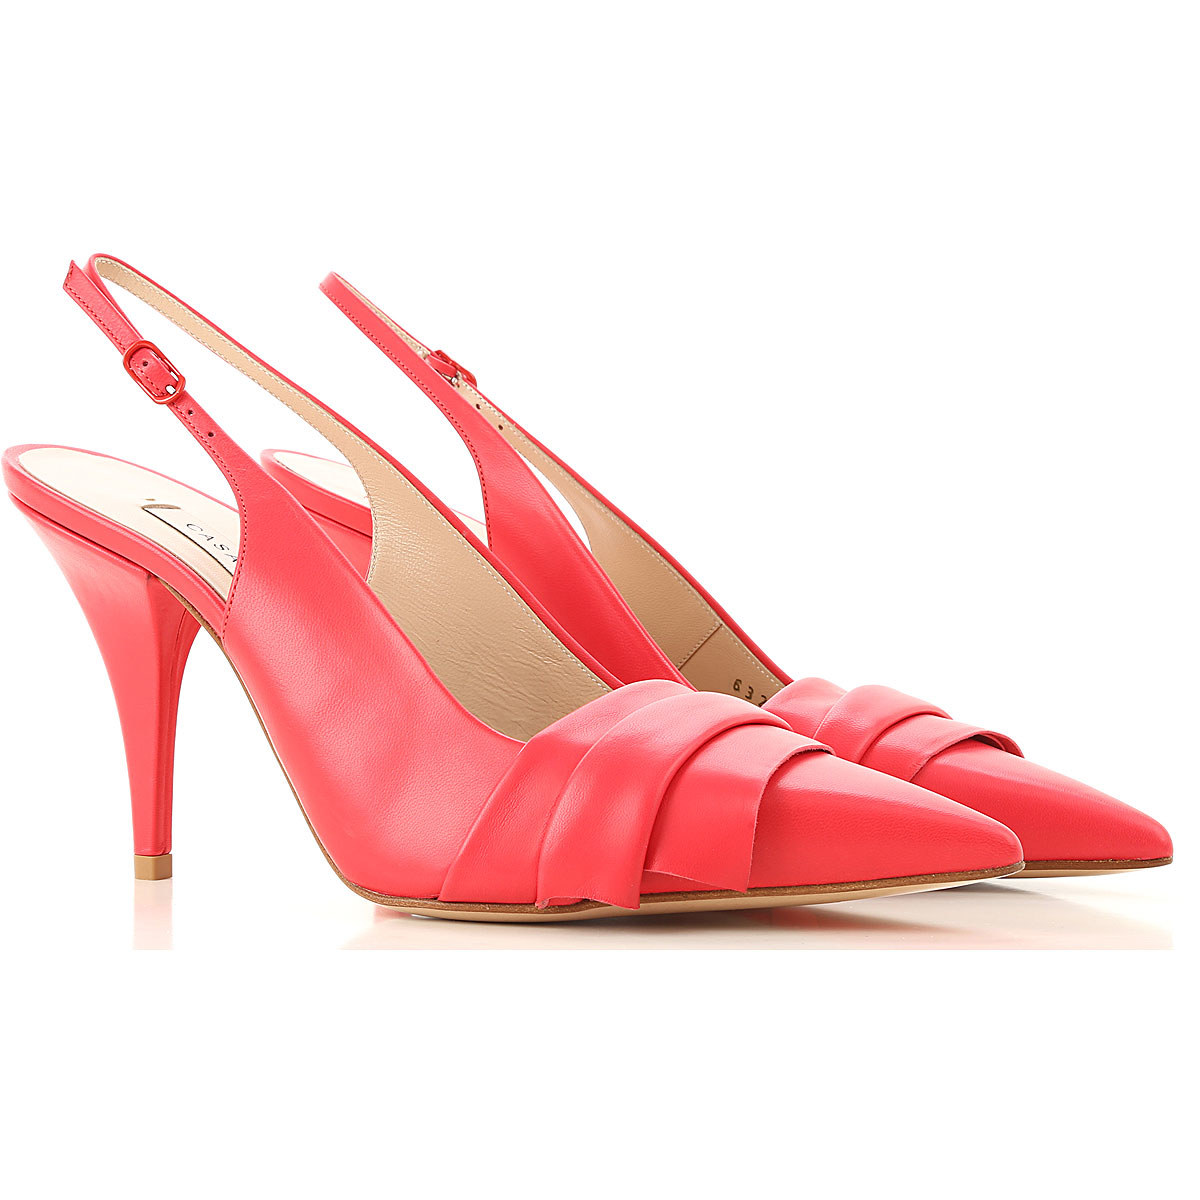 Casadei Sandals for Women On Sale Energy Red DK - GOOFASH - Womens SANDALS